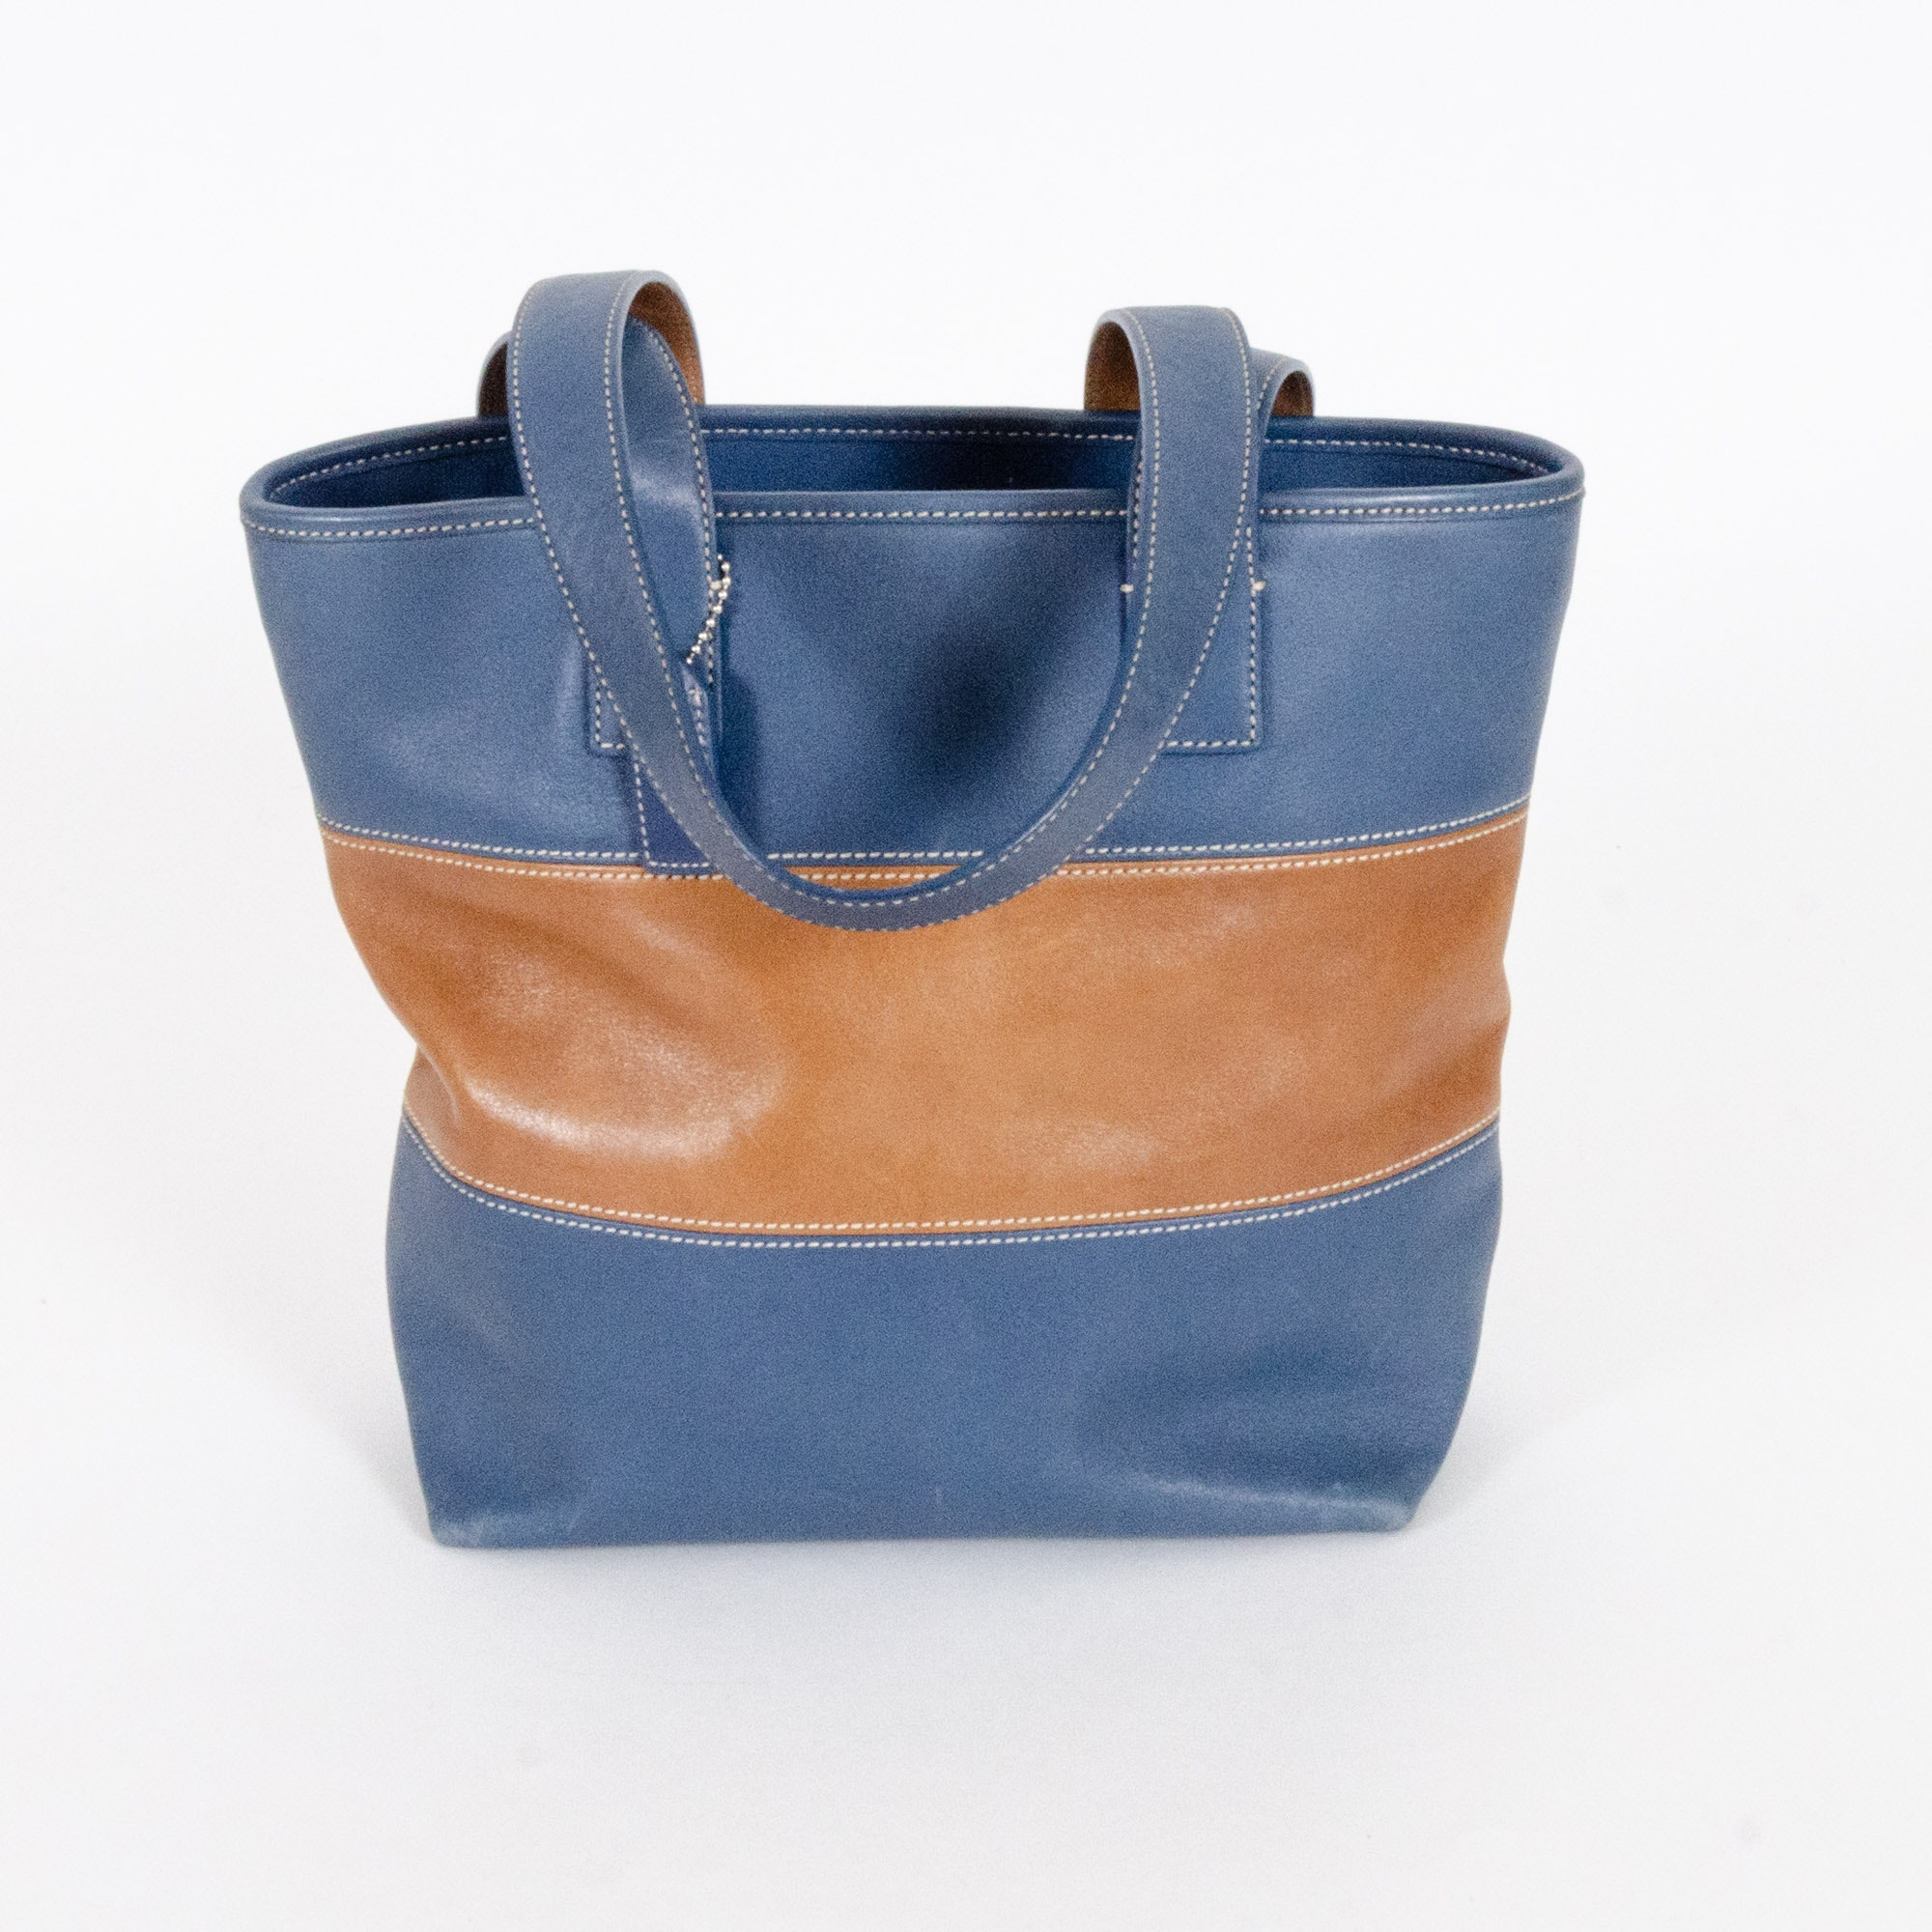 Coach Blue and Tan Leather Tote